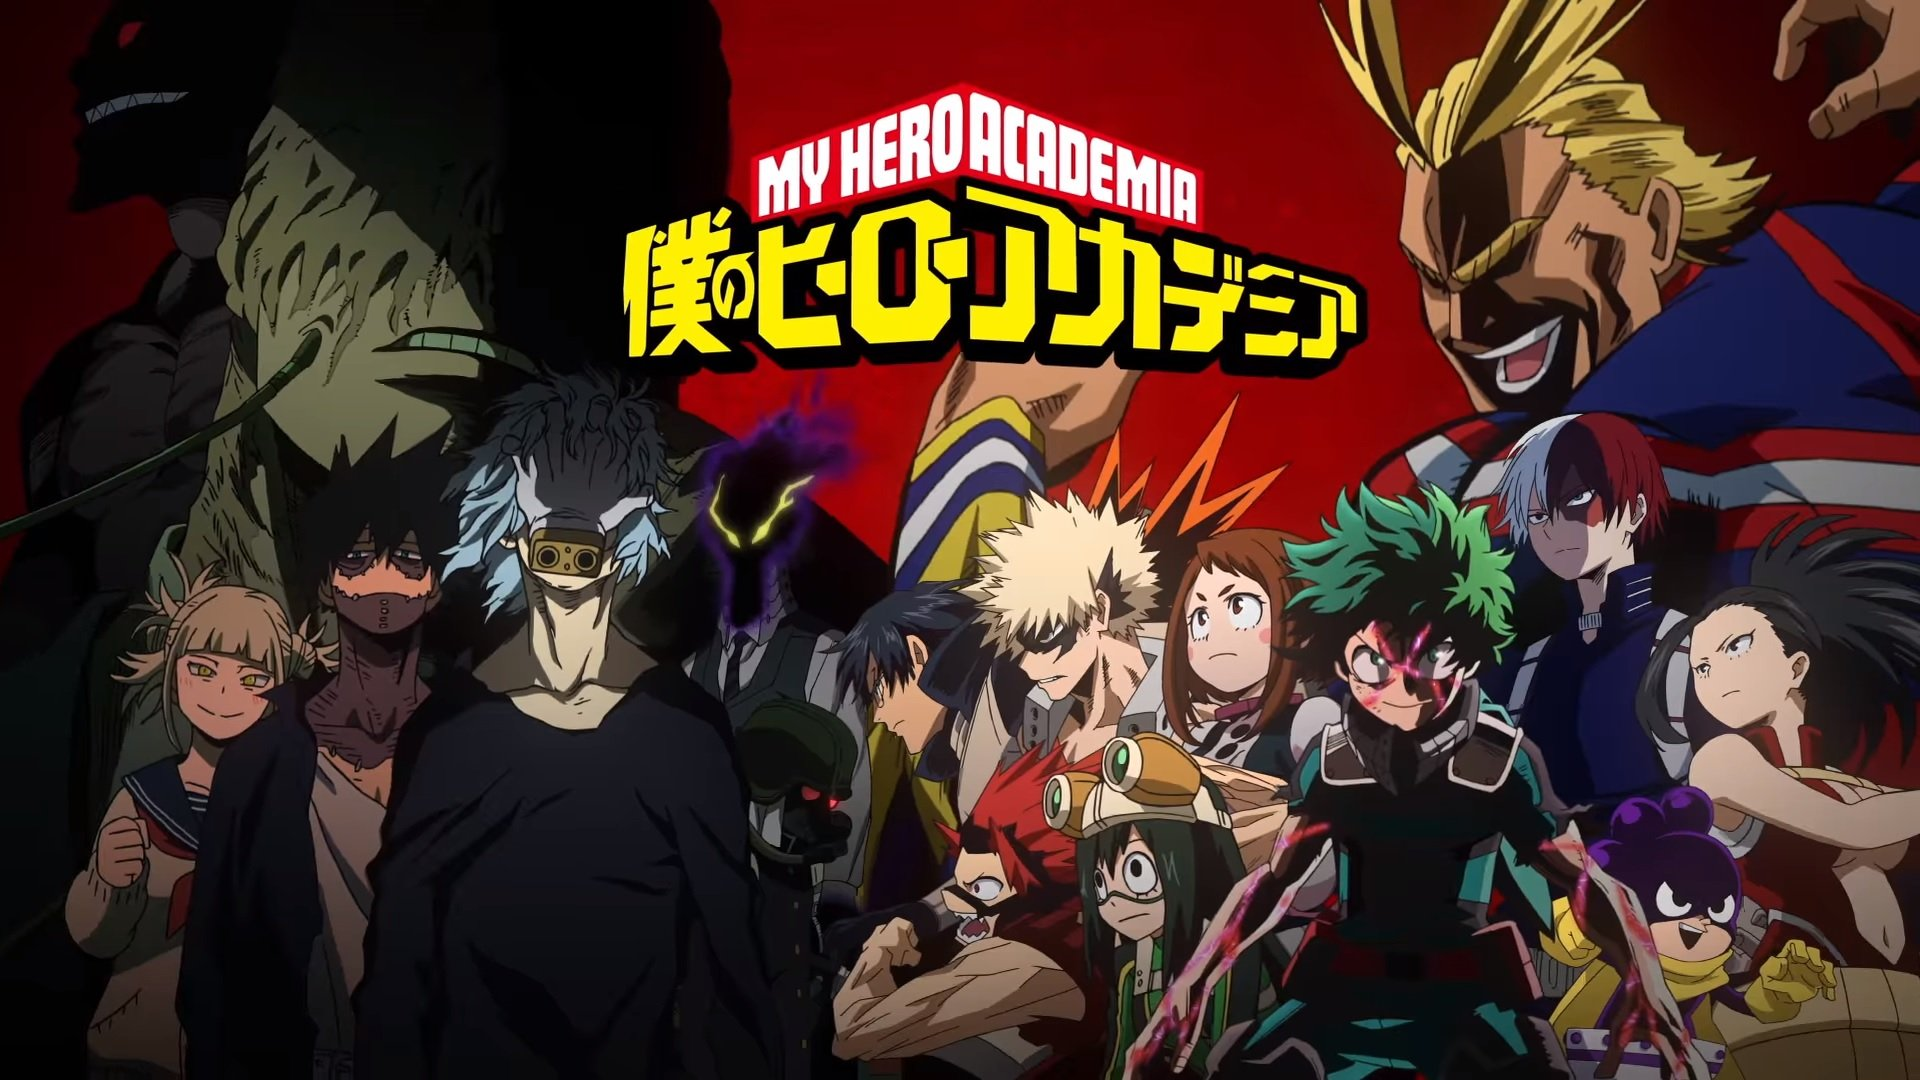 My Hero Academia Season 3 Official Announcement Teaser